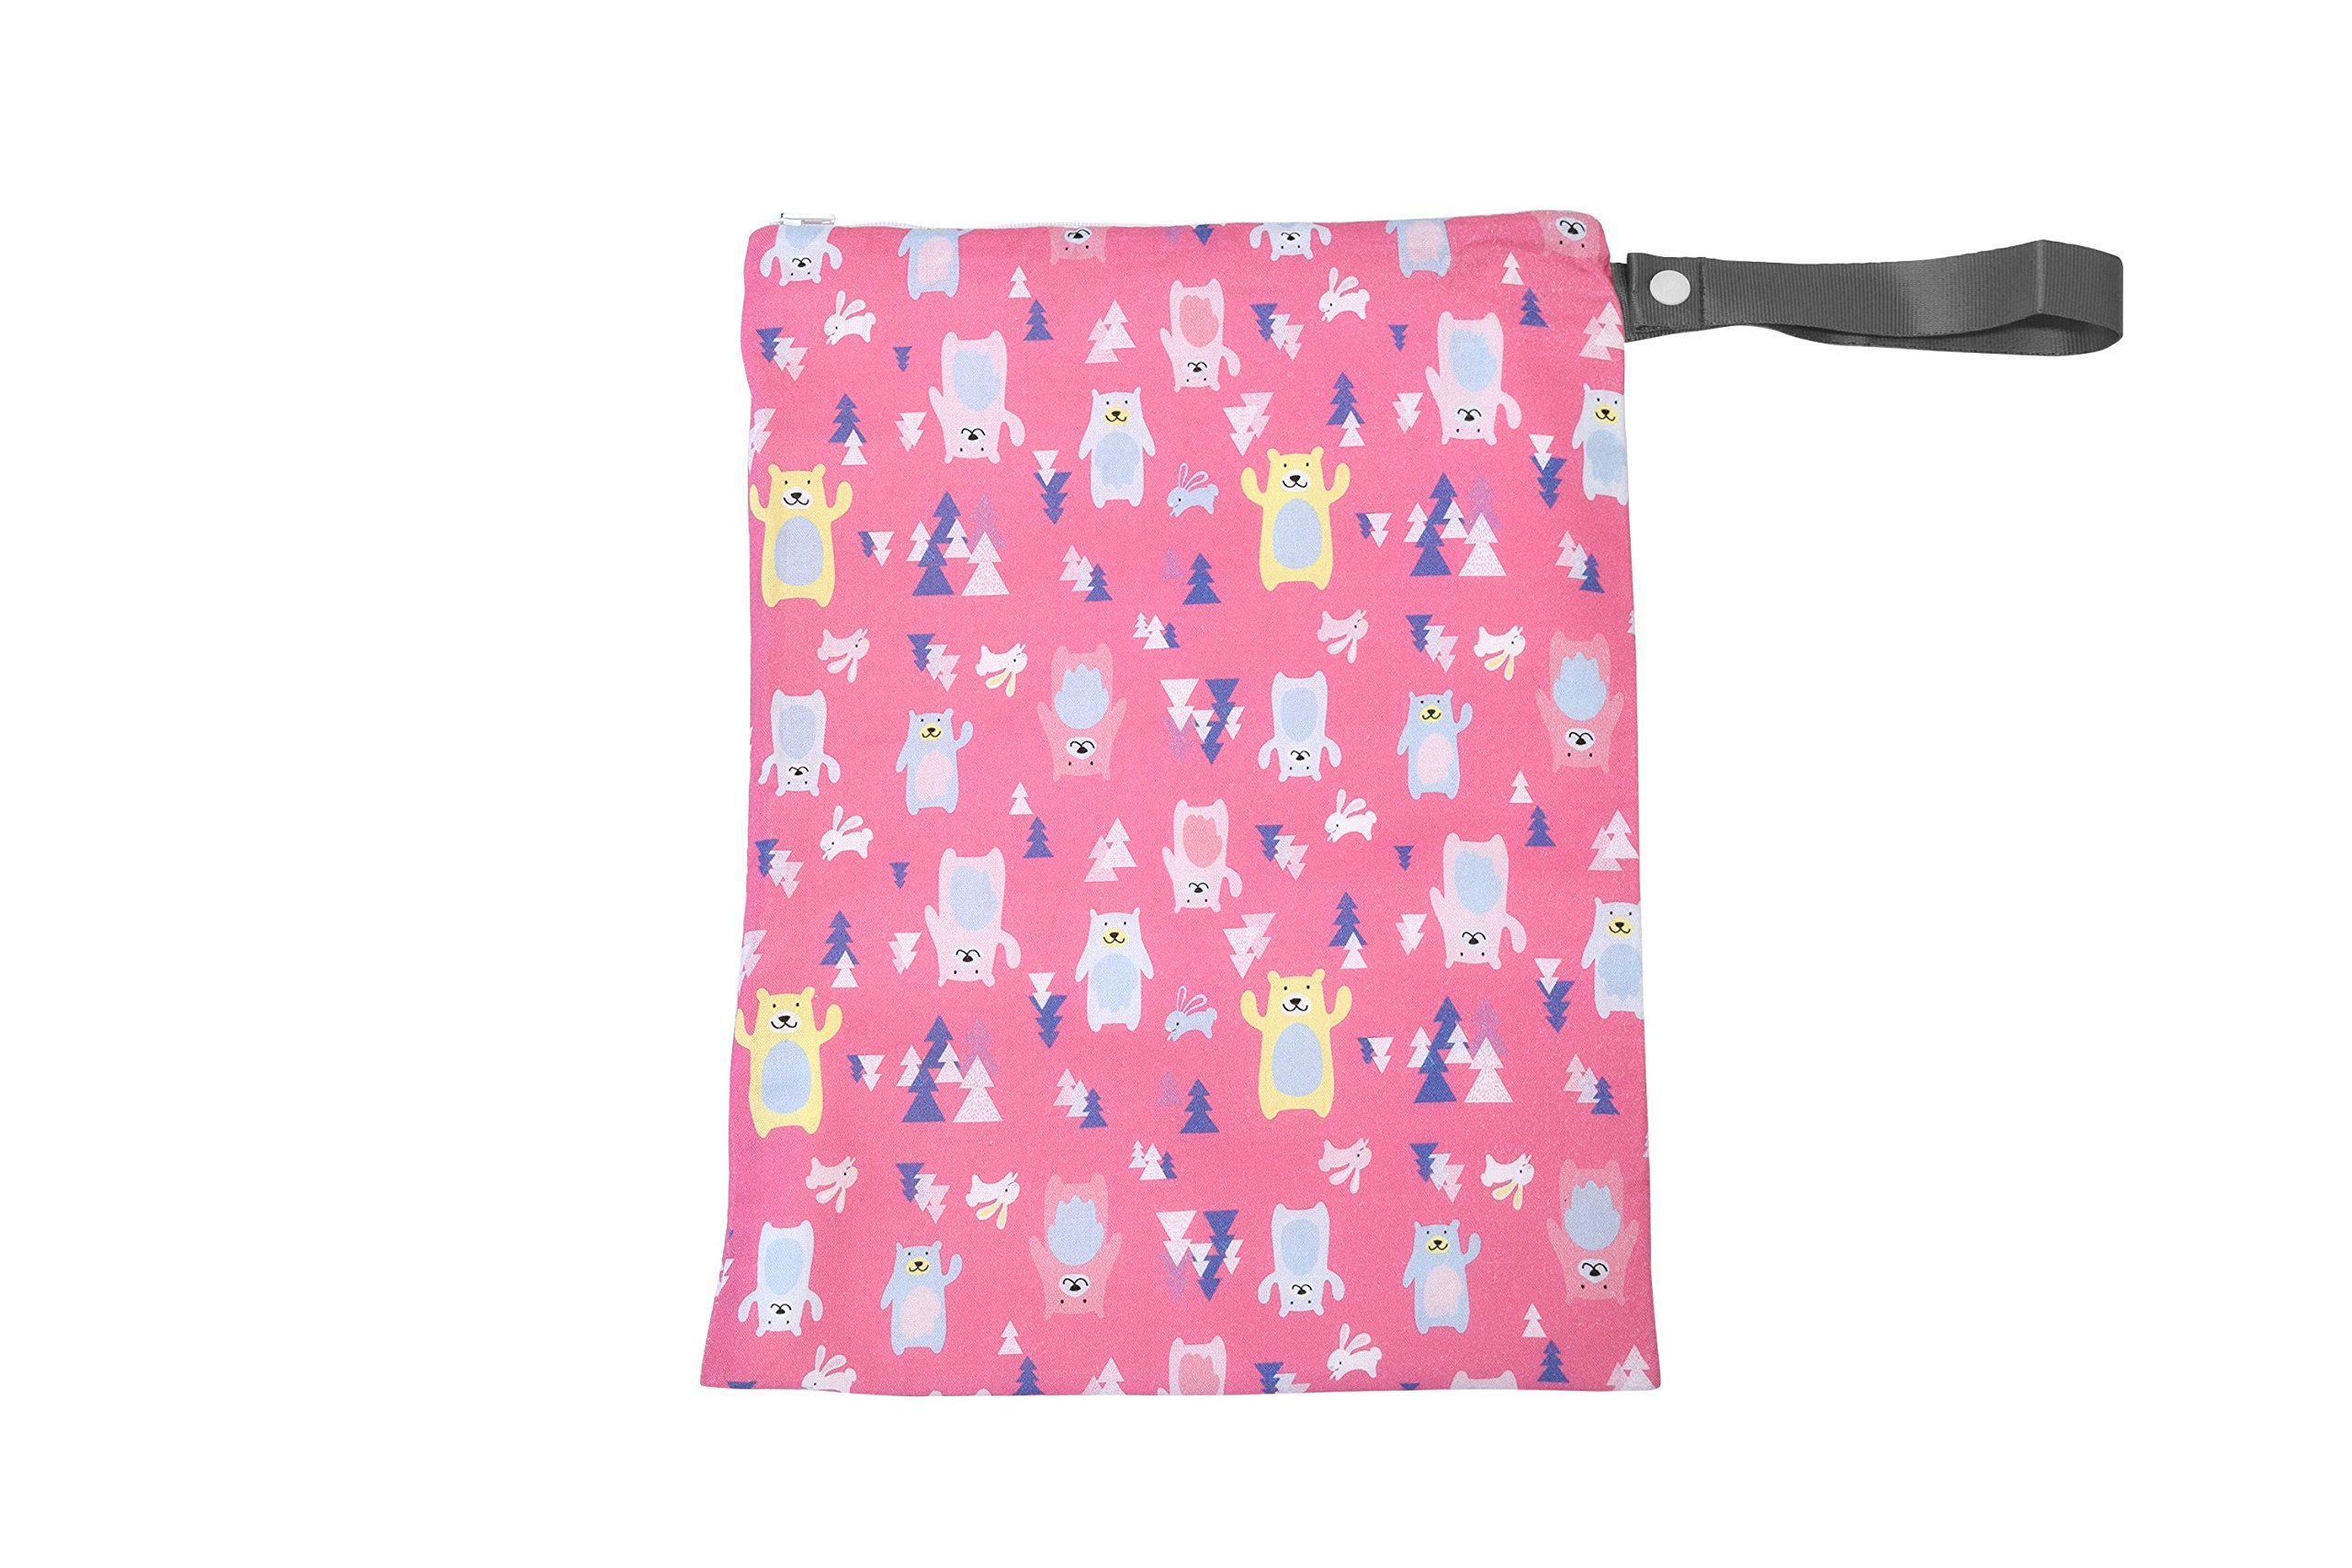 """Itzy Ritzy Sealed Wet Bag with Adjustable Handle – Washable and Reusable Wet Bag with Water Resistant Lining Ideal for Swimwear, Diapers, Gym Clothes & Toiletries; Measures 11"""" x 14"""", Forest Friends"""